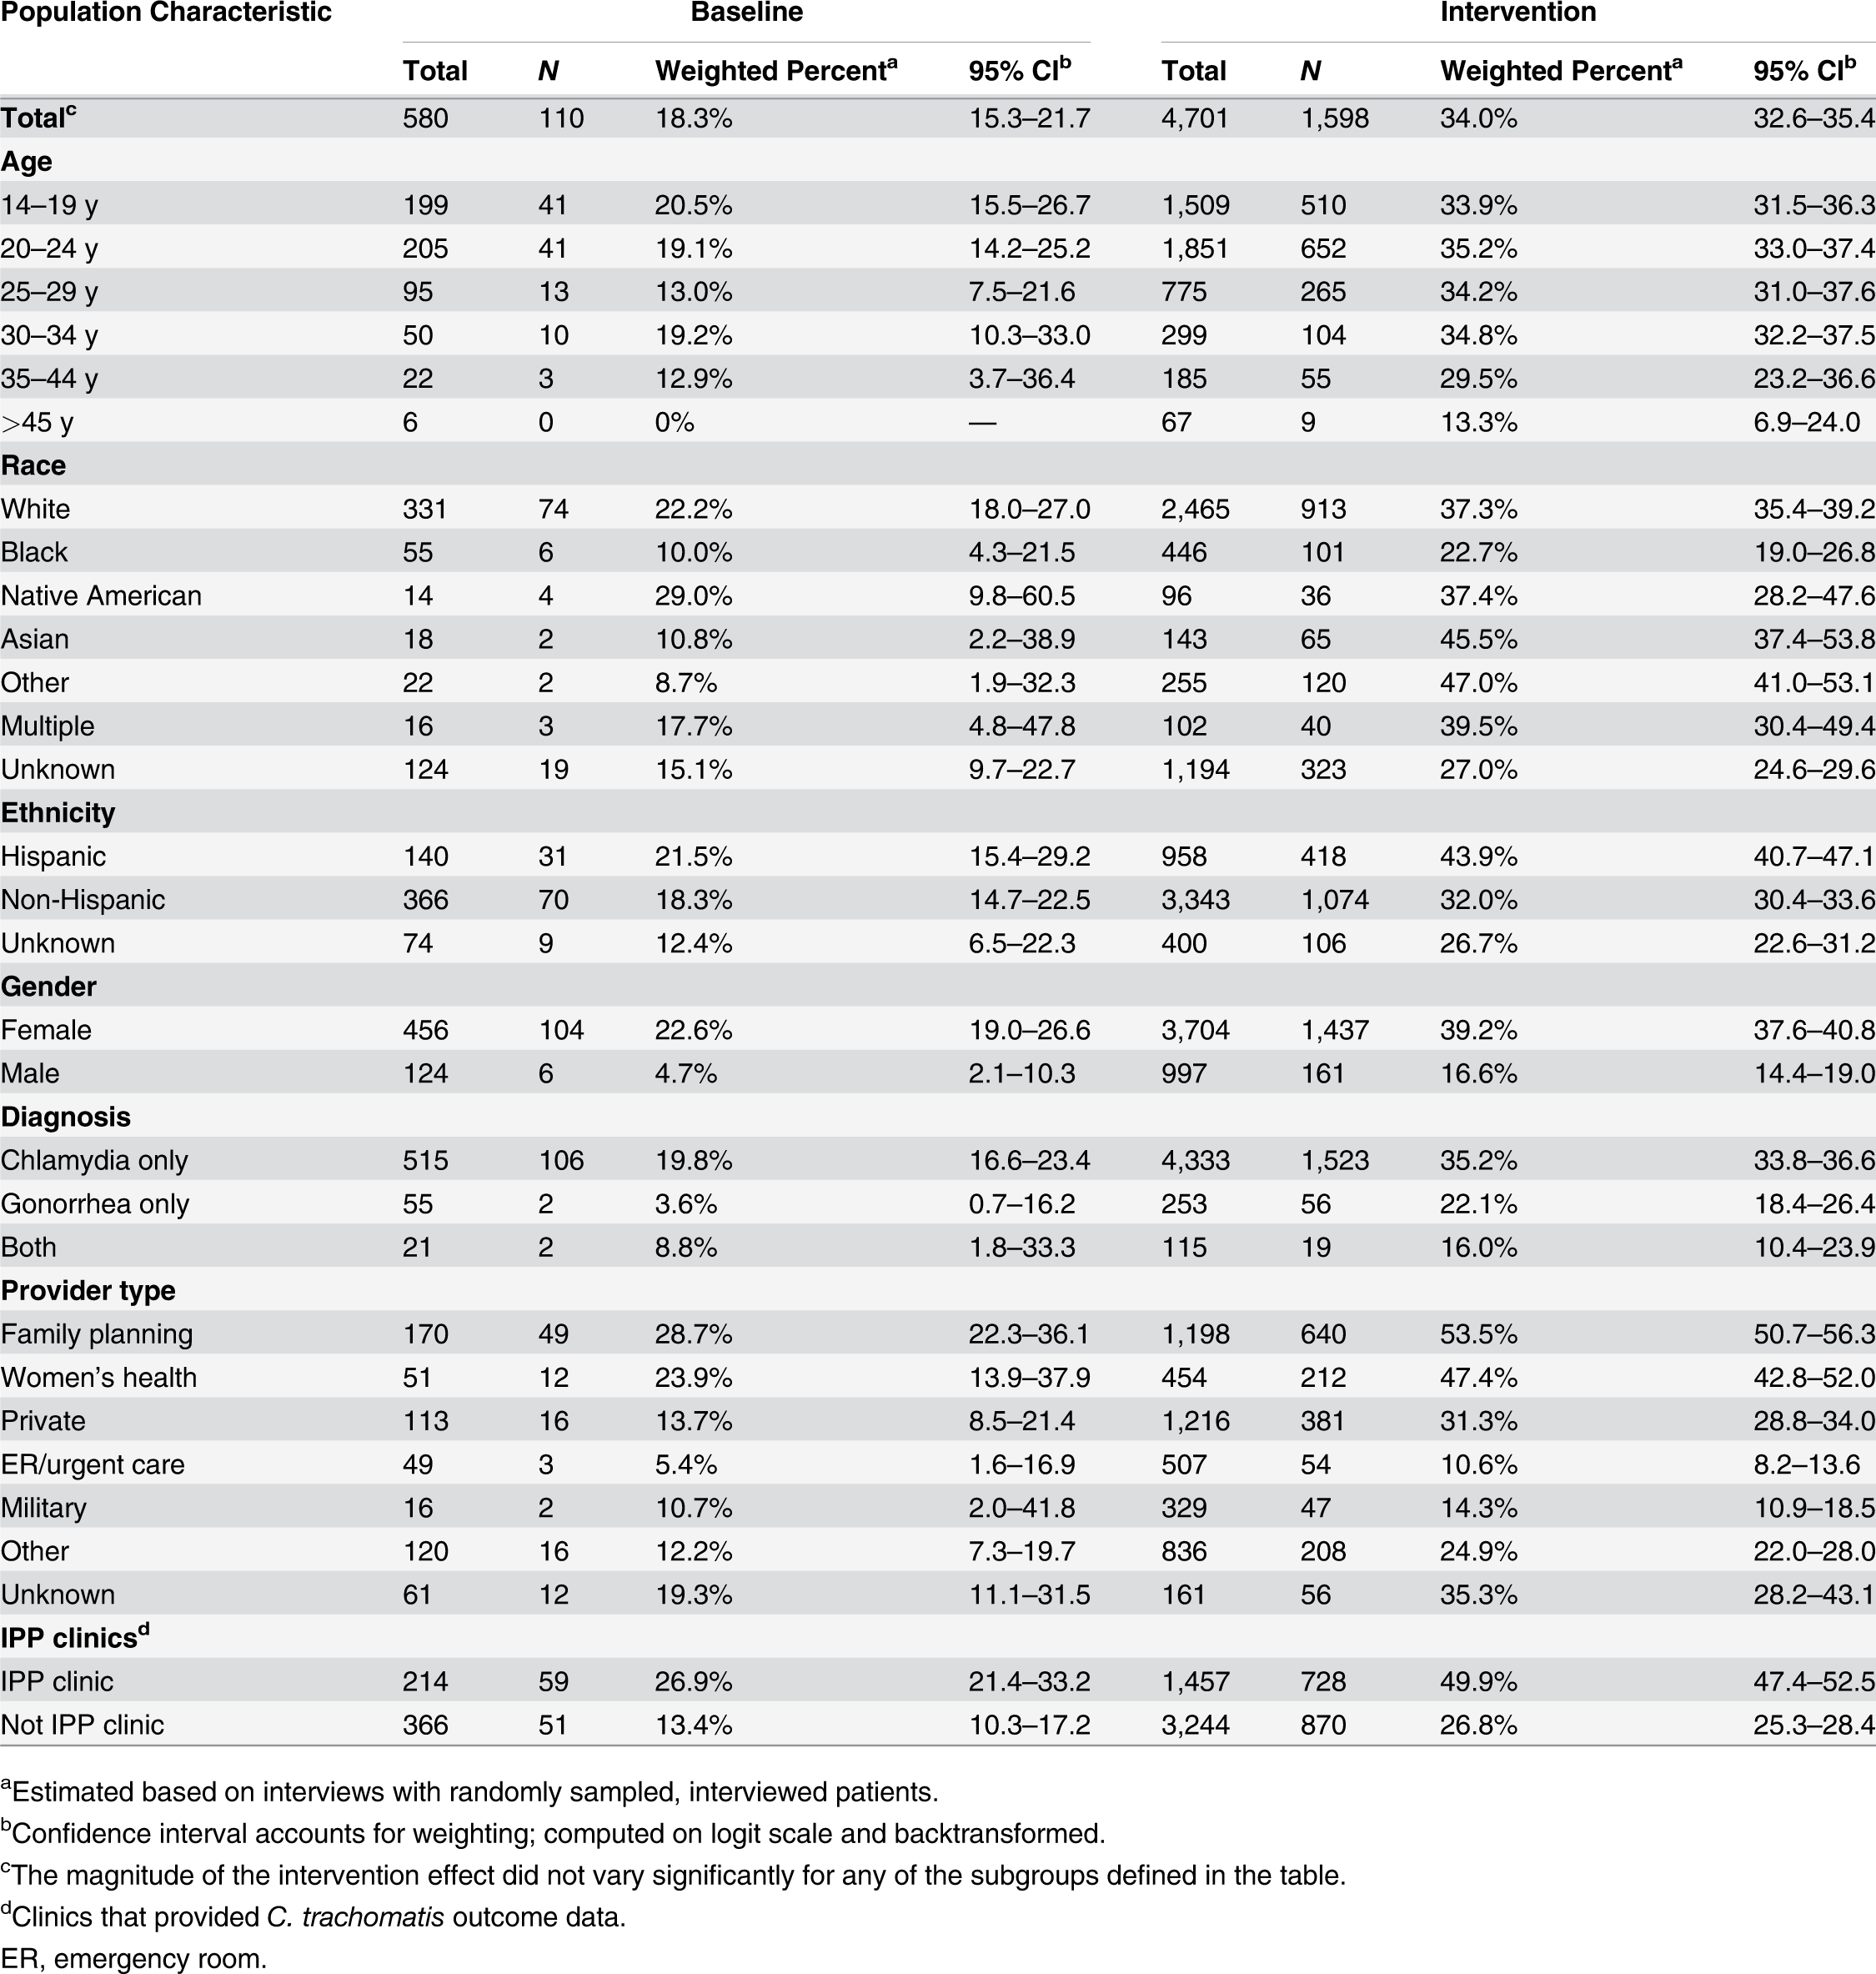 Medical providers' use of patient delivered partner therapy within subgroups of patients during baseline and intervention periods.